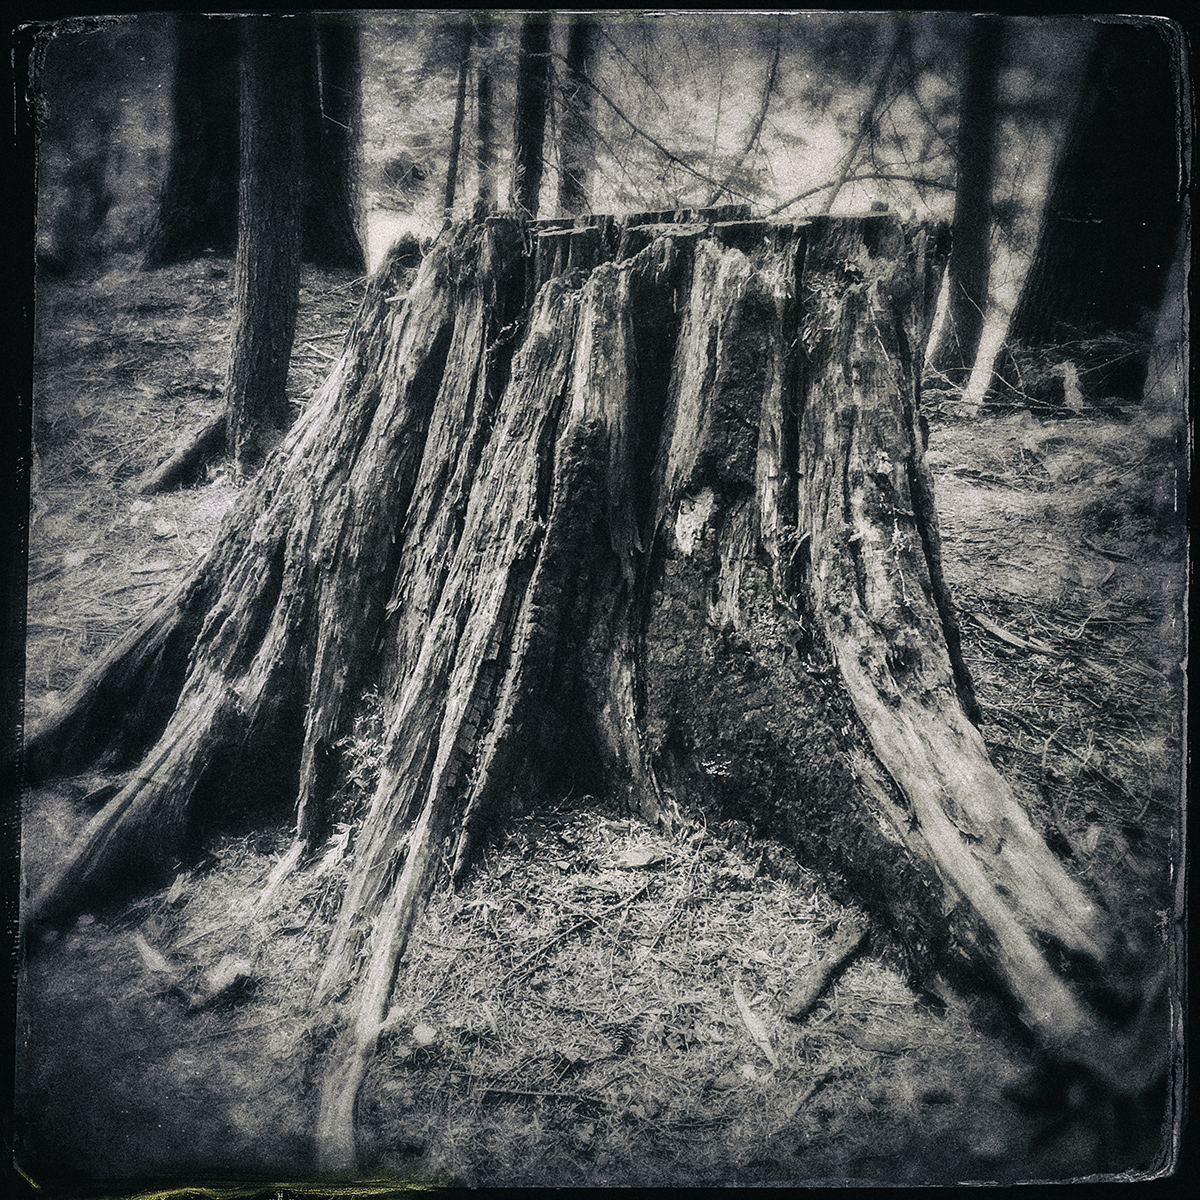 Forest of Lost Trees 16 72dpi.jpg